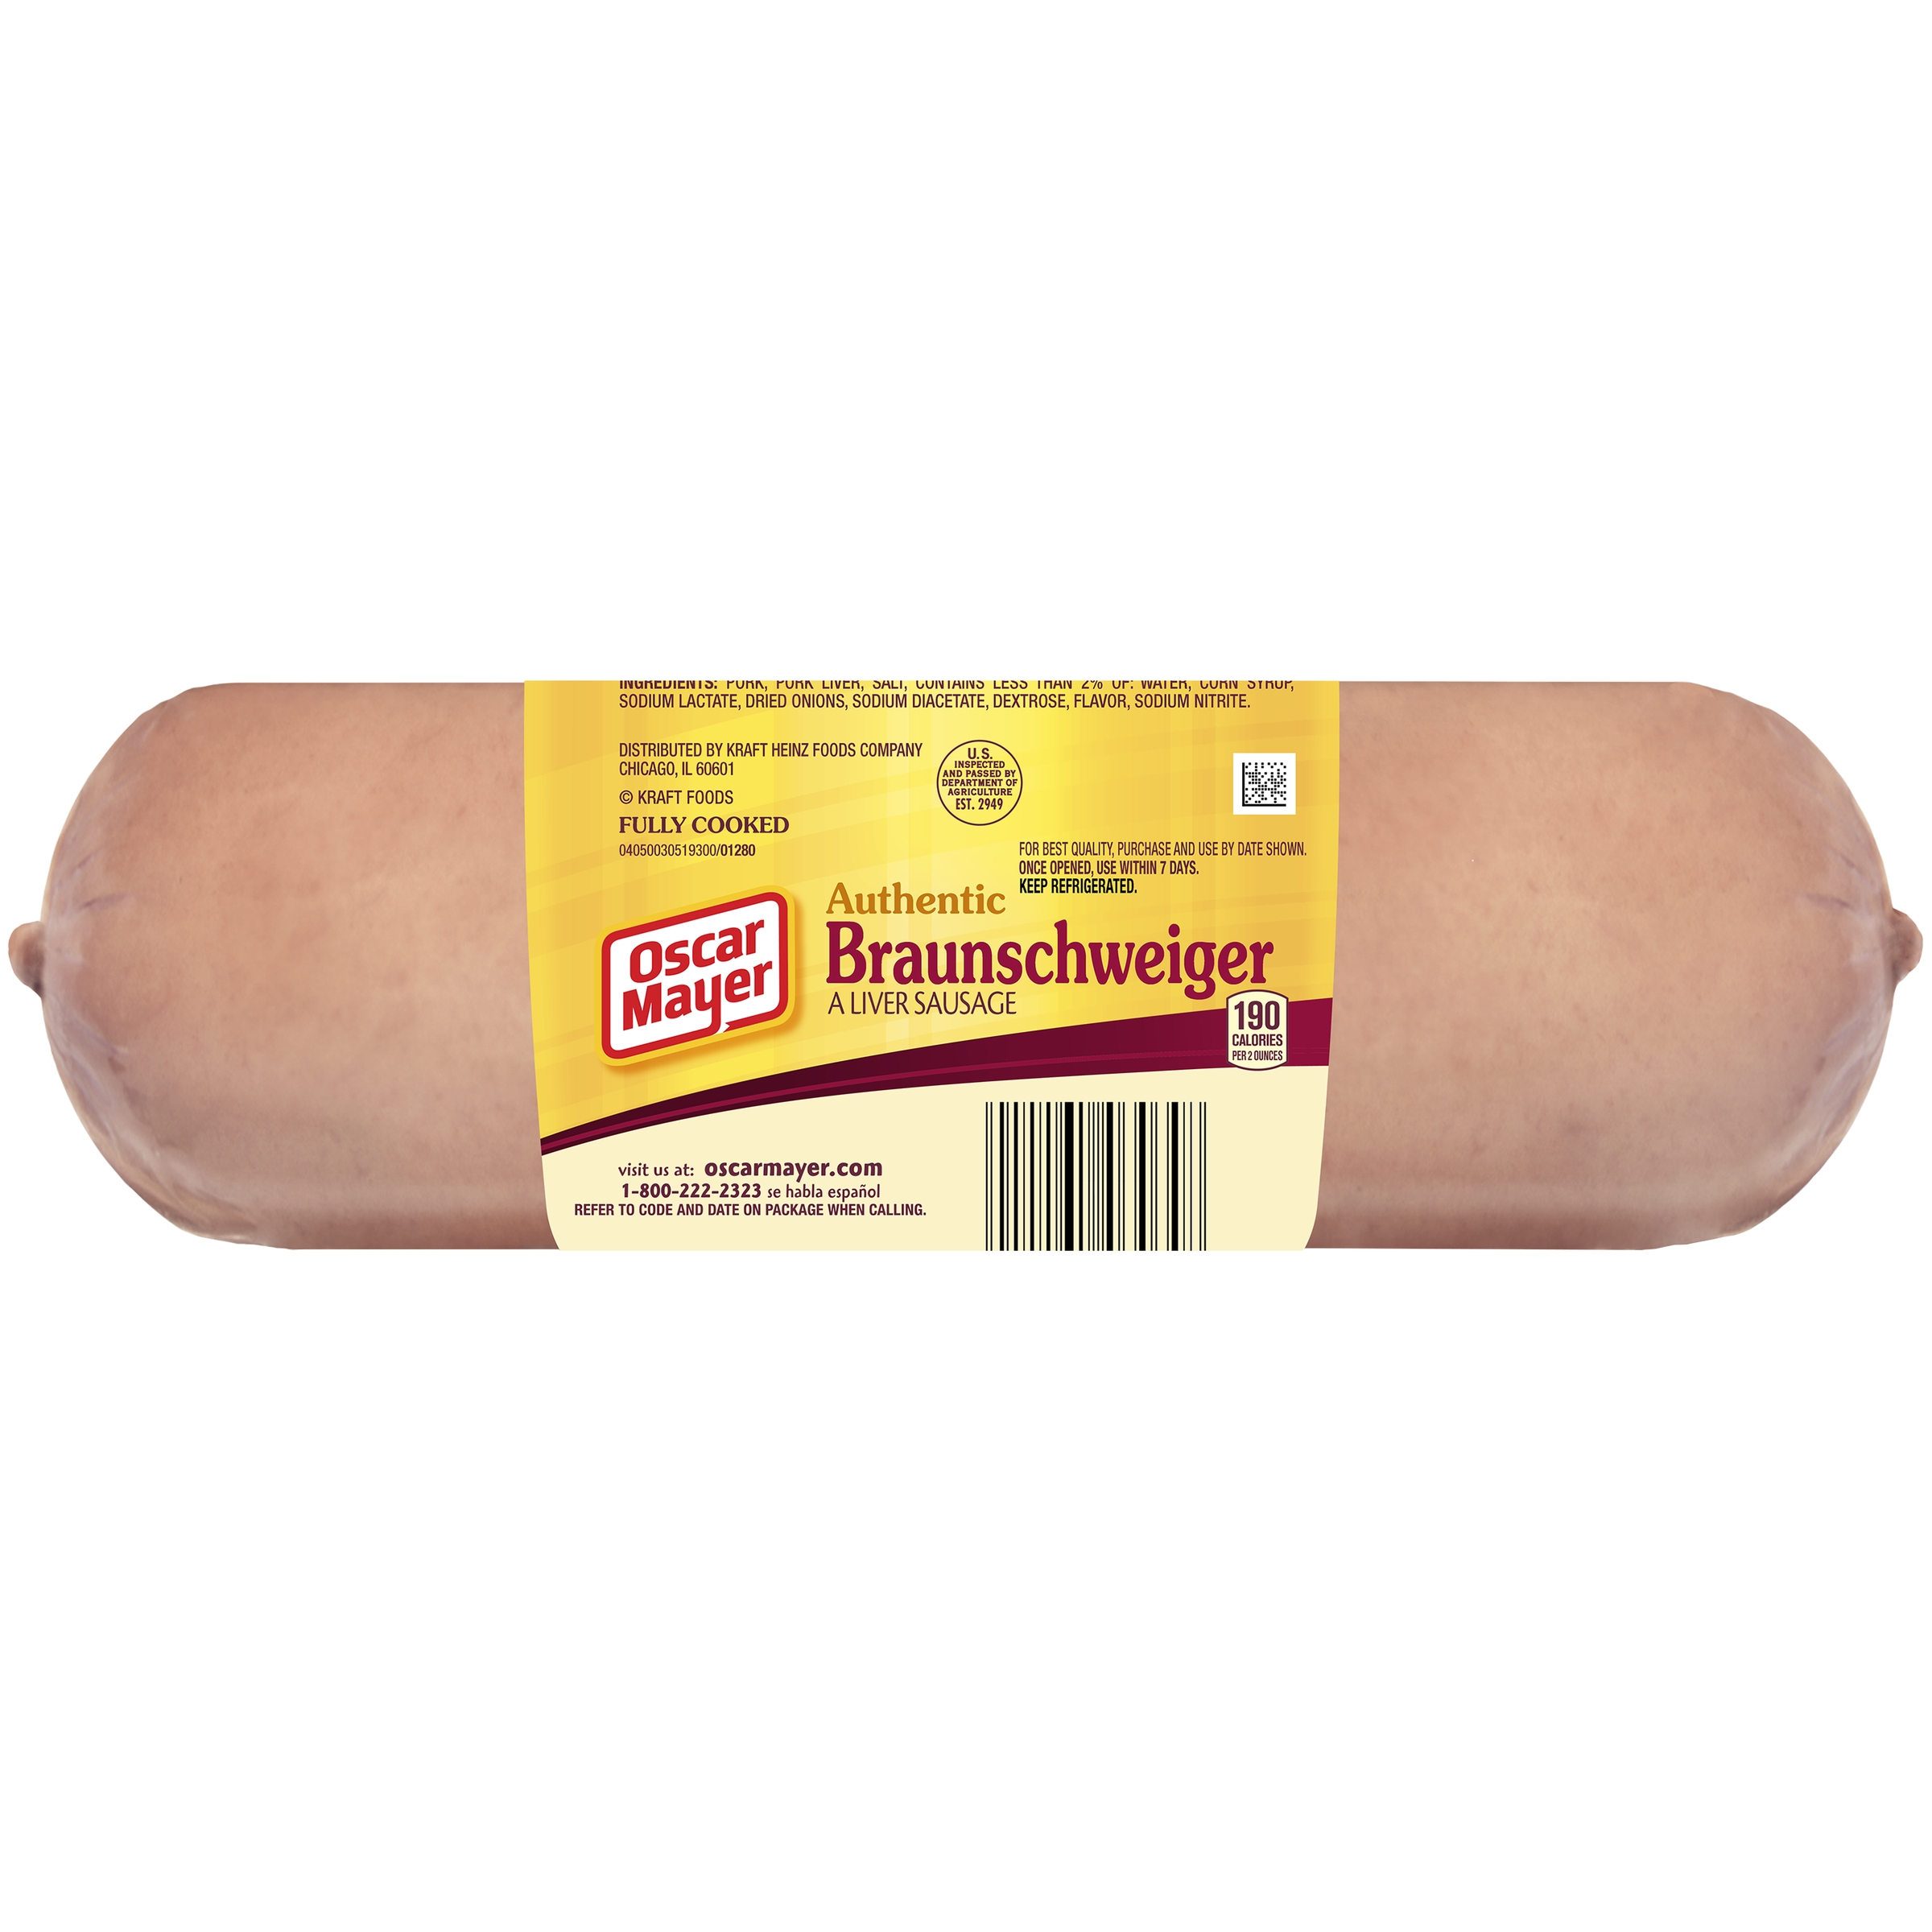 Ham and braunschweiger pate furthermore Info Oscar Mayer Foods Corp likewise Info Oscar Mayer Foods Corp furthermore Holiday Hostess Tree A Christmas Tree With Meat Ornaments 1961 respond also Beverages 11. on oscar mayer liver sausage dip